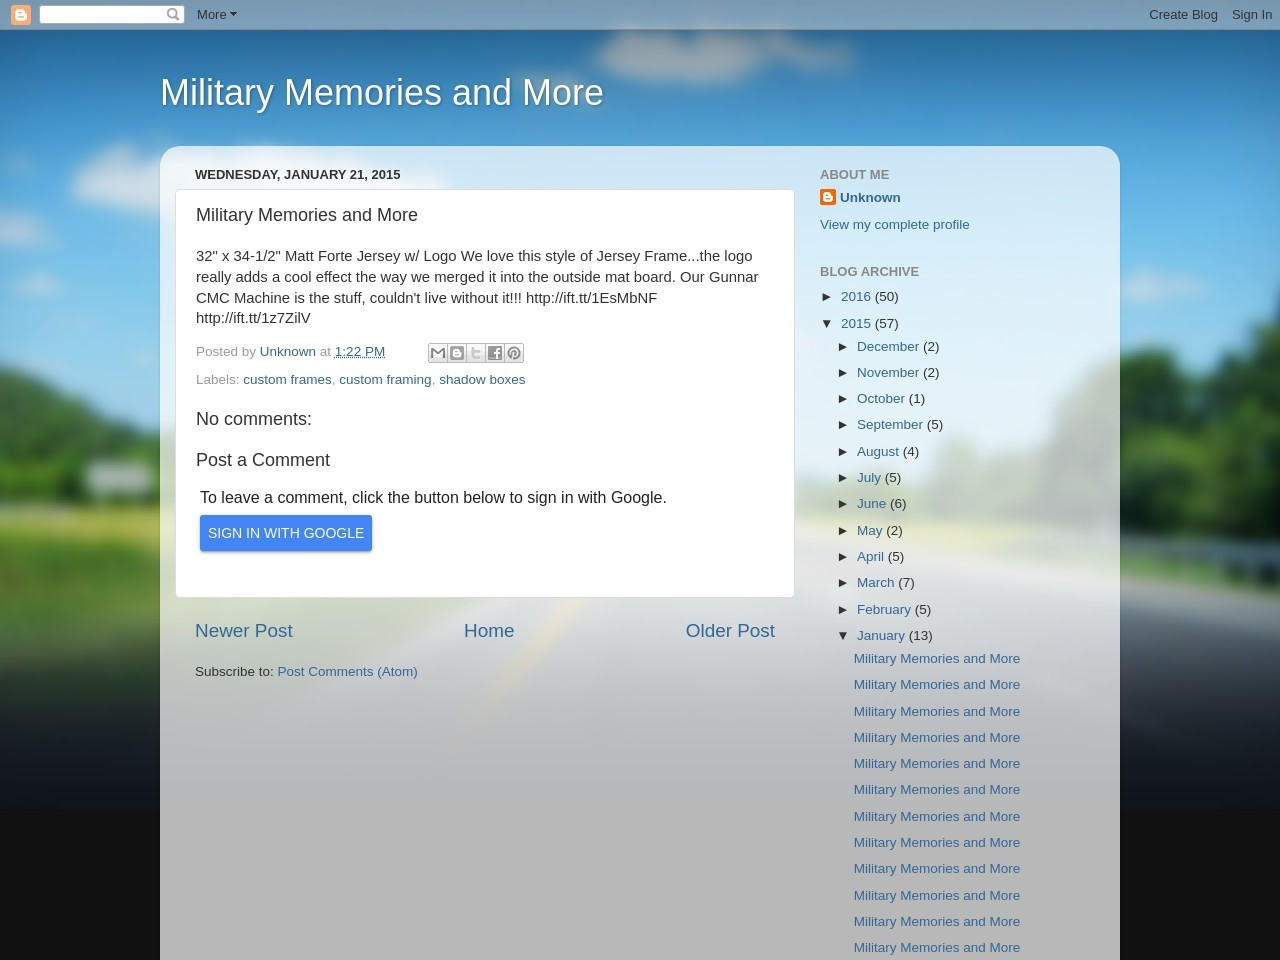 Military Memories and More